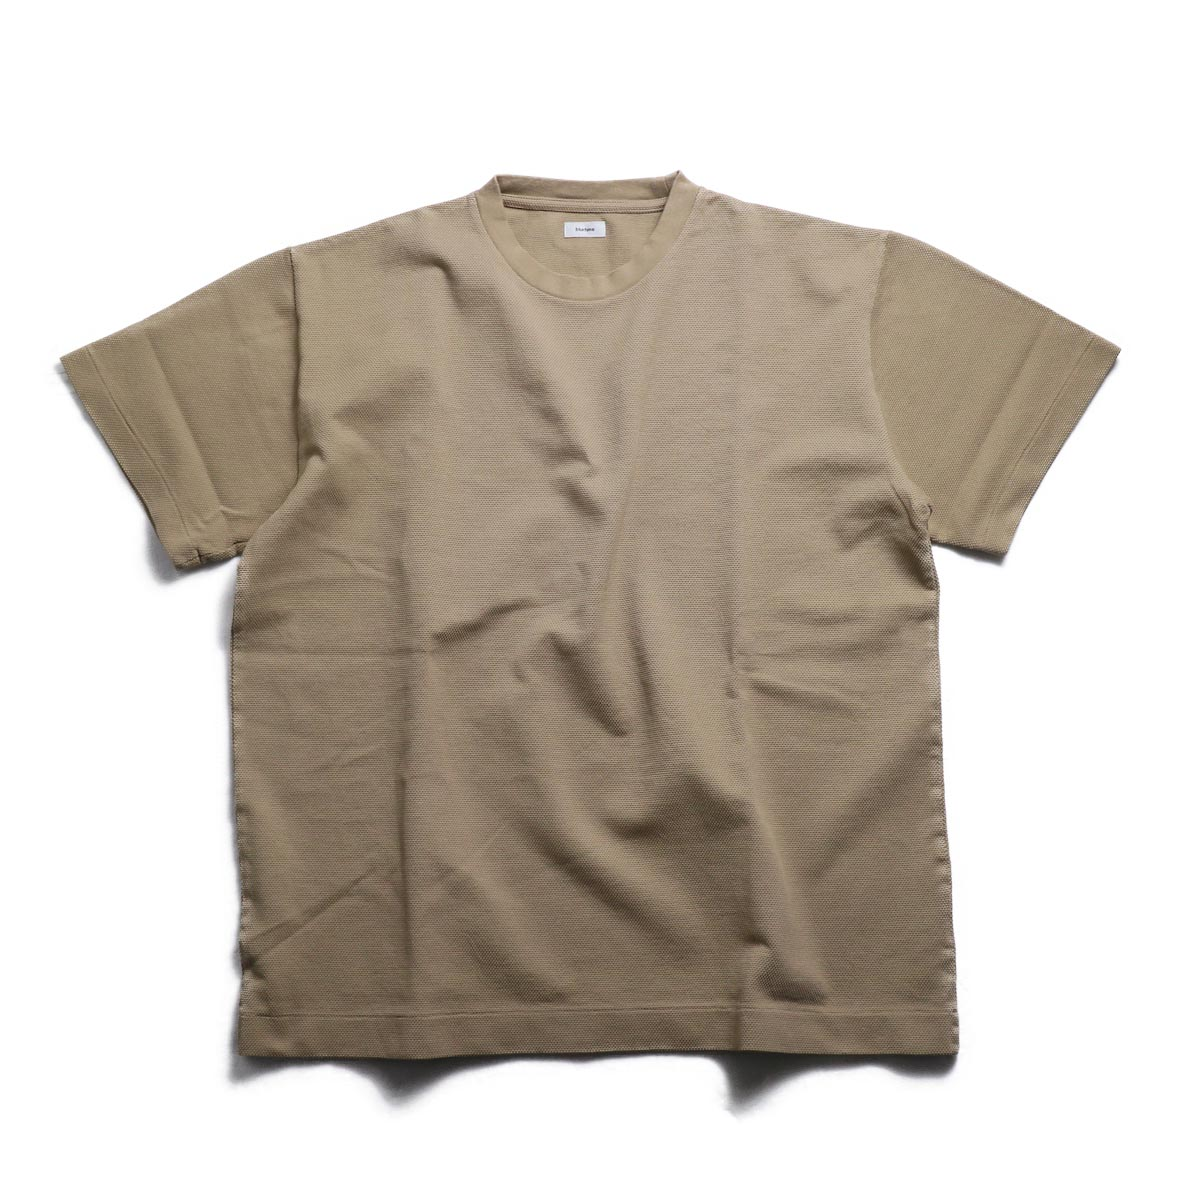 blurhms / Seed Stitch Box Tee -Light Beige